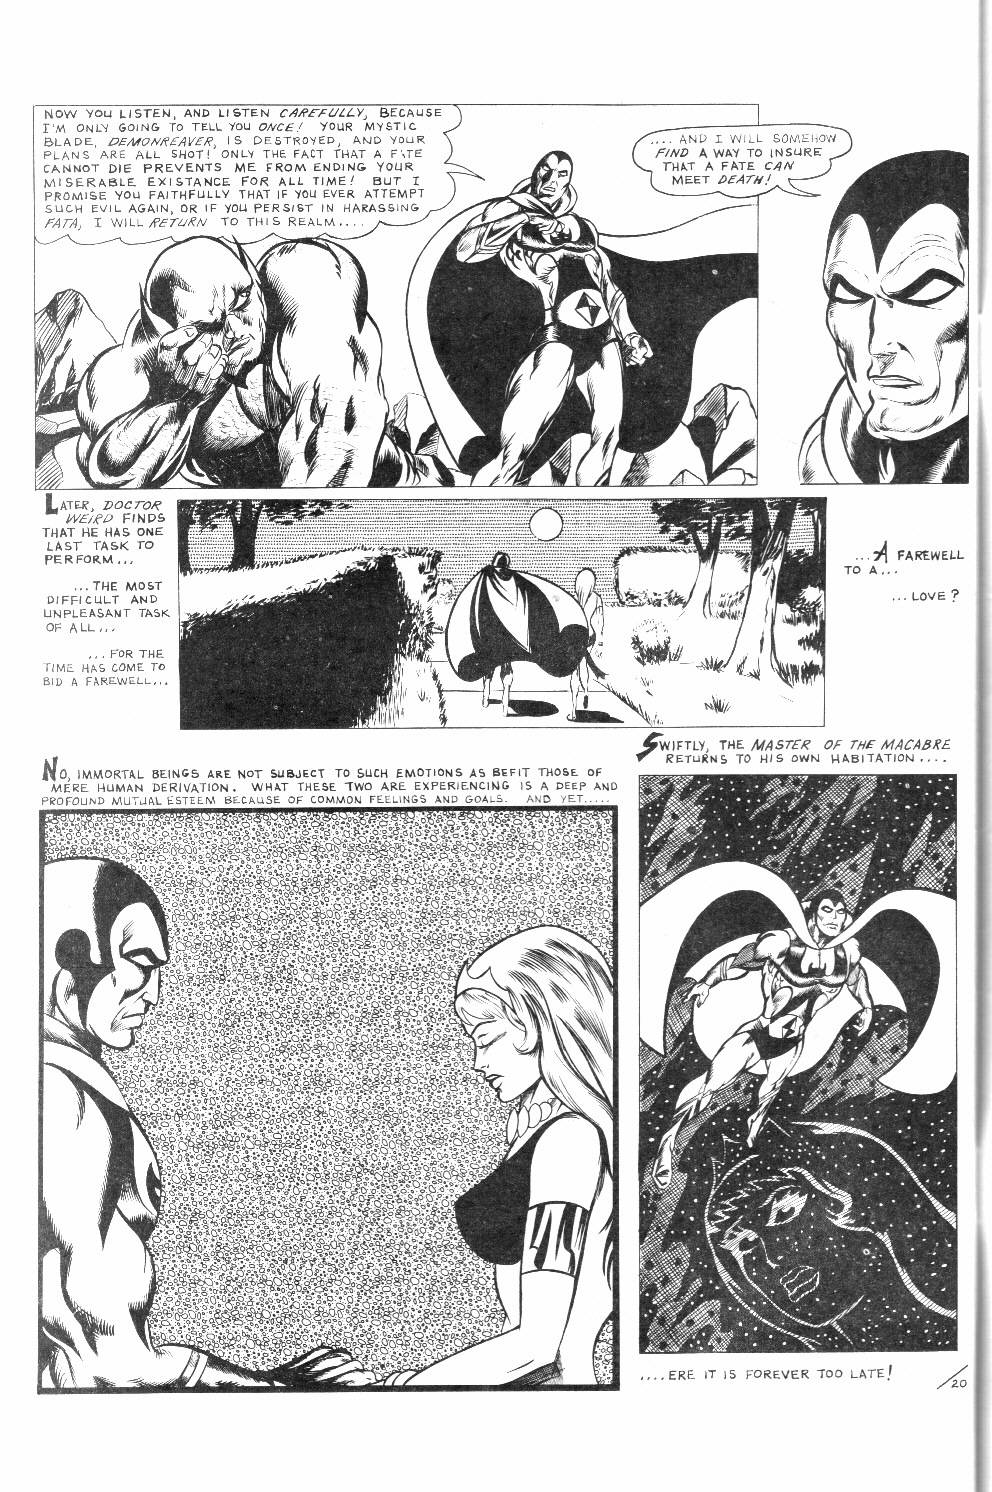 Read online Dr. Weird Special comic -  Issue # Full - 62